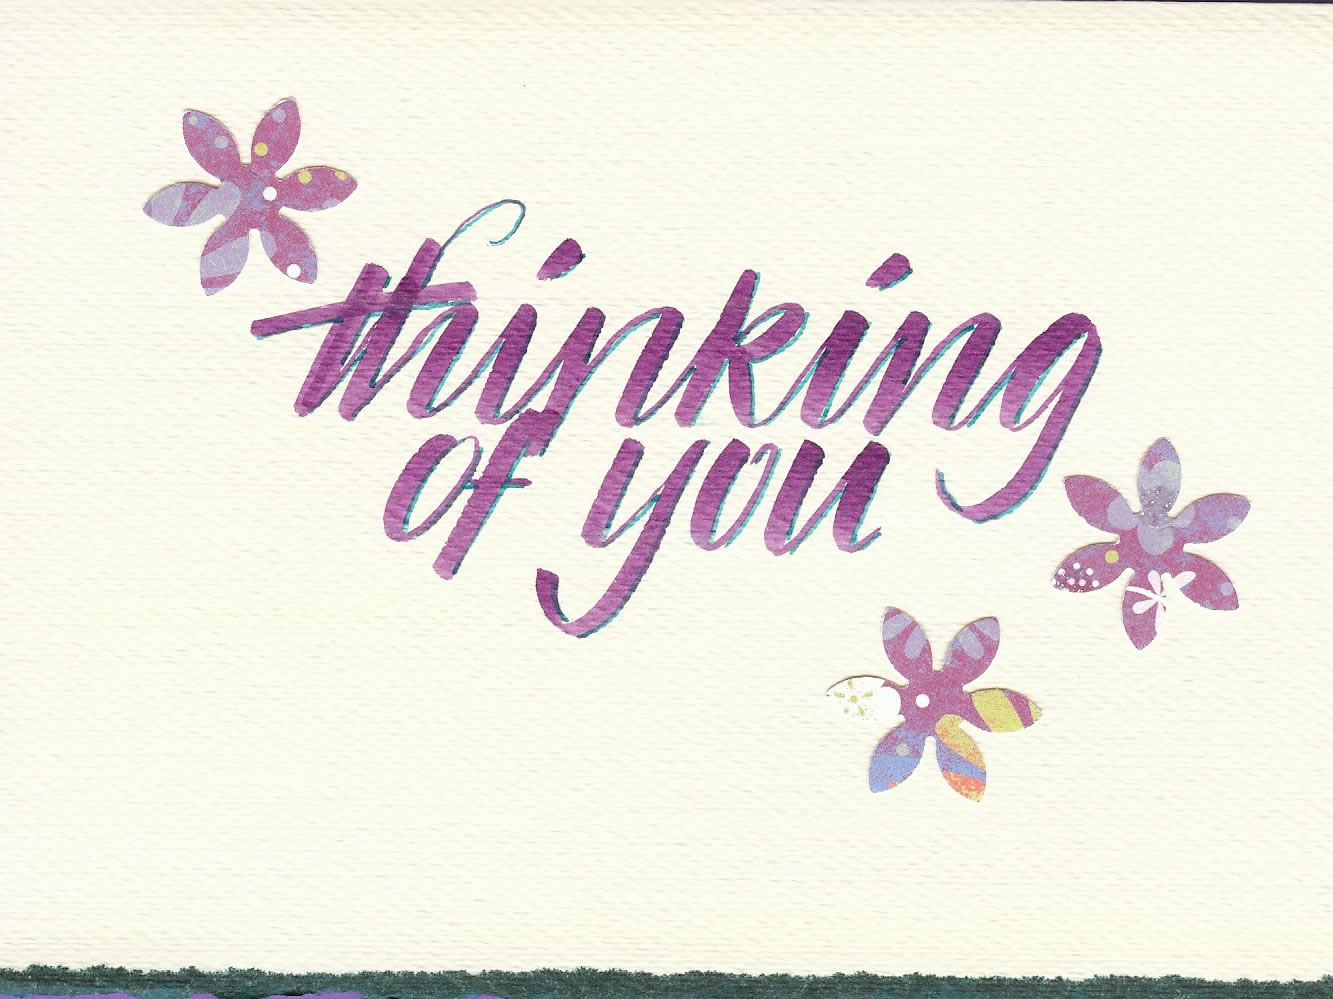 Violet Smythe (thinking of you card)